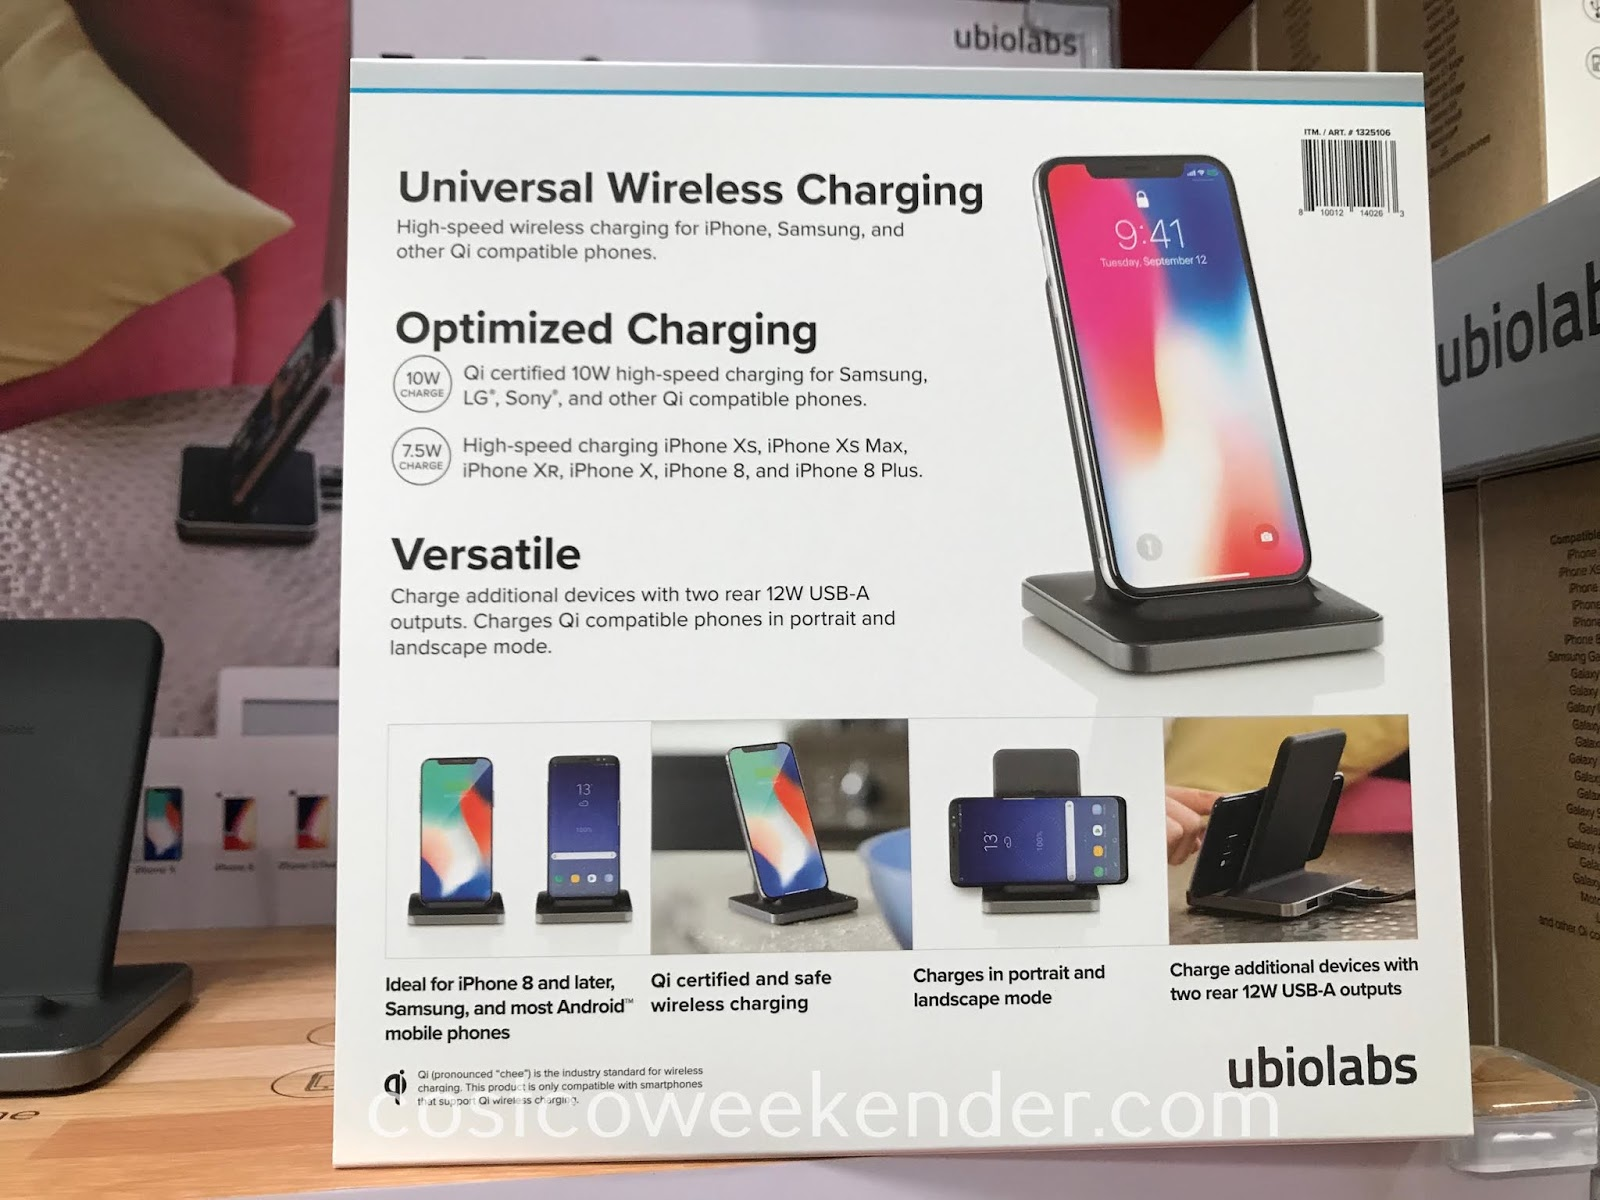 Costco 1325106 - Ubio Labs Wireless Charging Stand: convenient yet practical